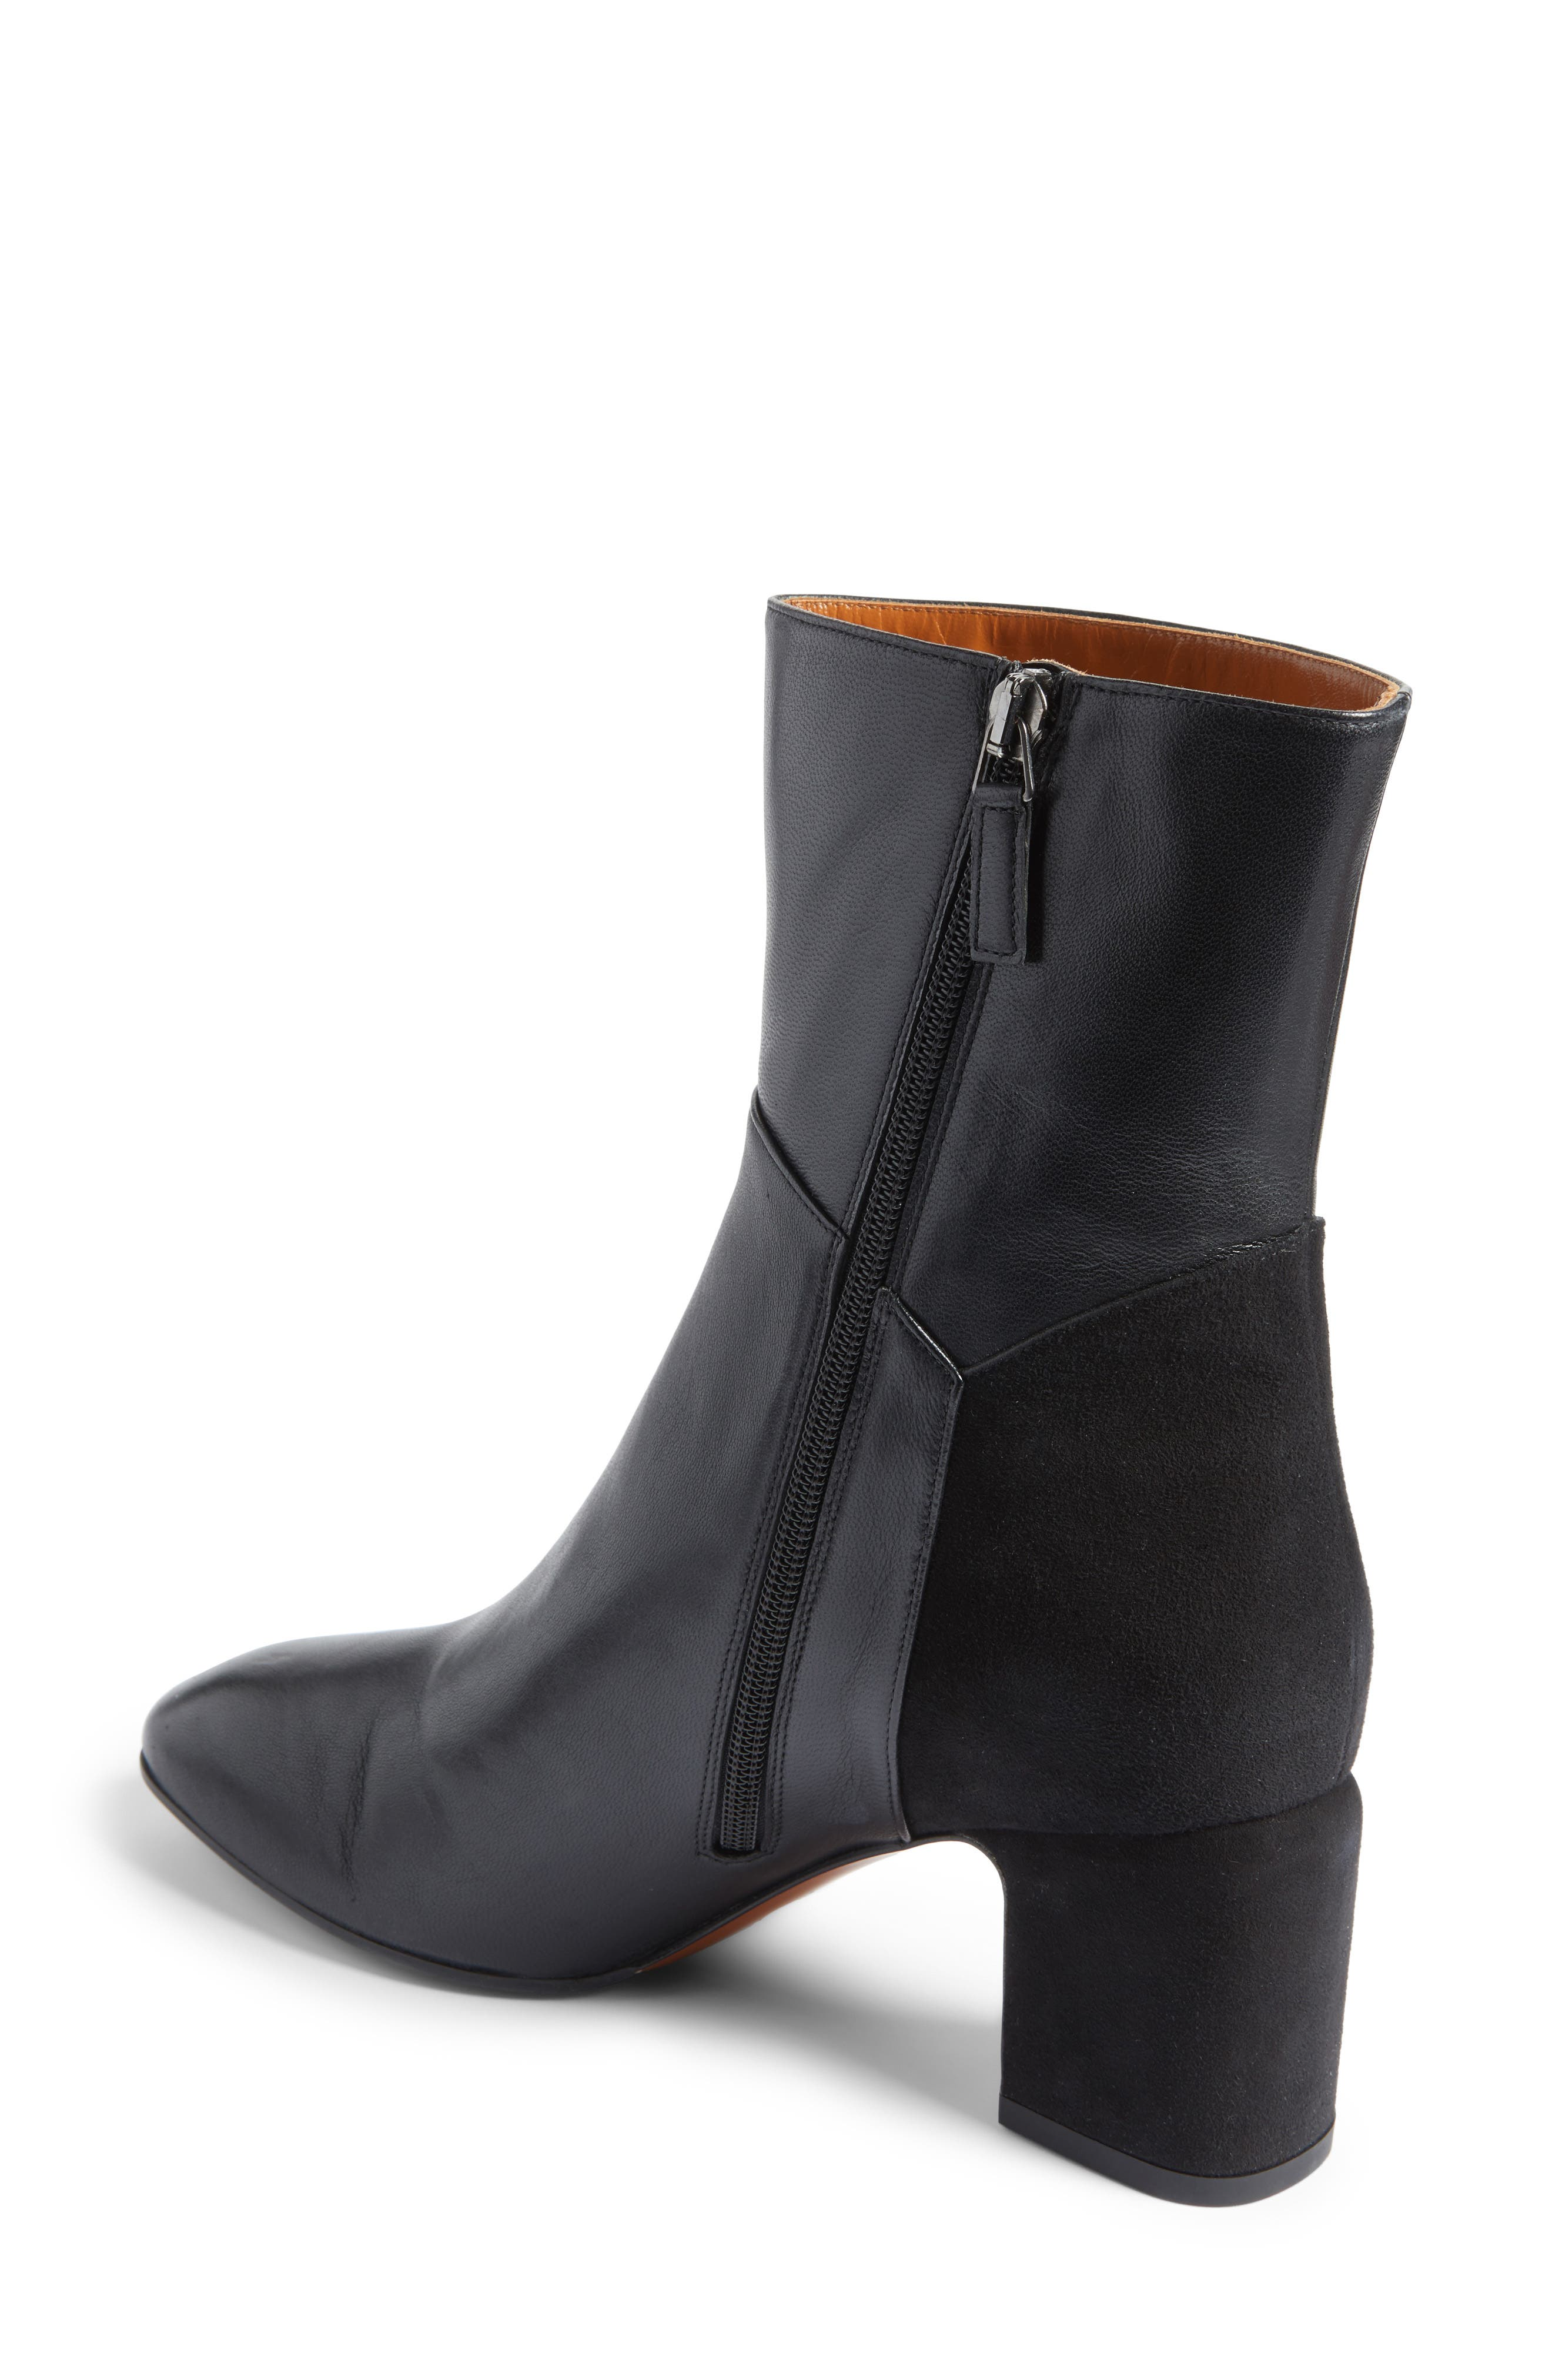 Elodie Weatherproof Boot,                             Alternate thumbnail 2, color,                             001